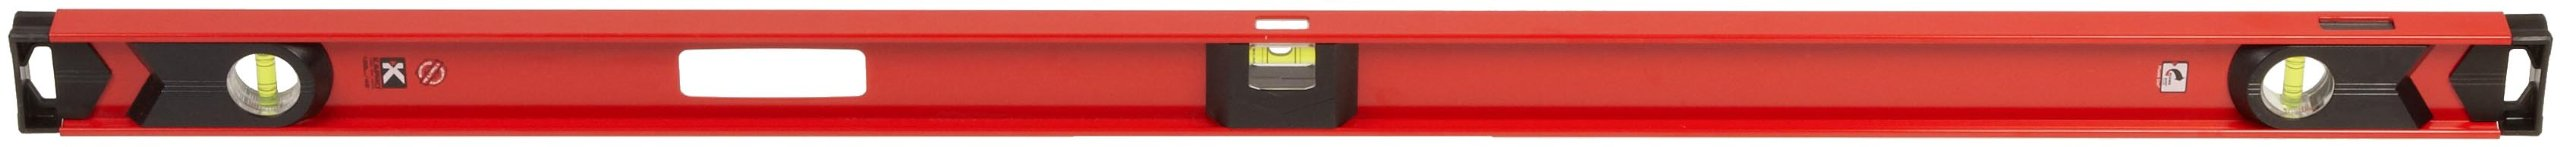 Kapro 150-81-48 I-Beam Level with Plumb Site, 48-Inch